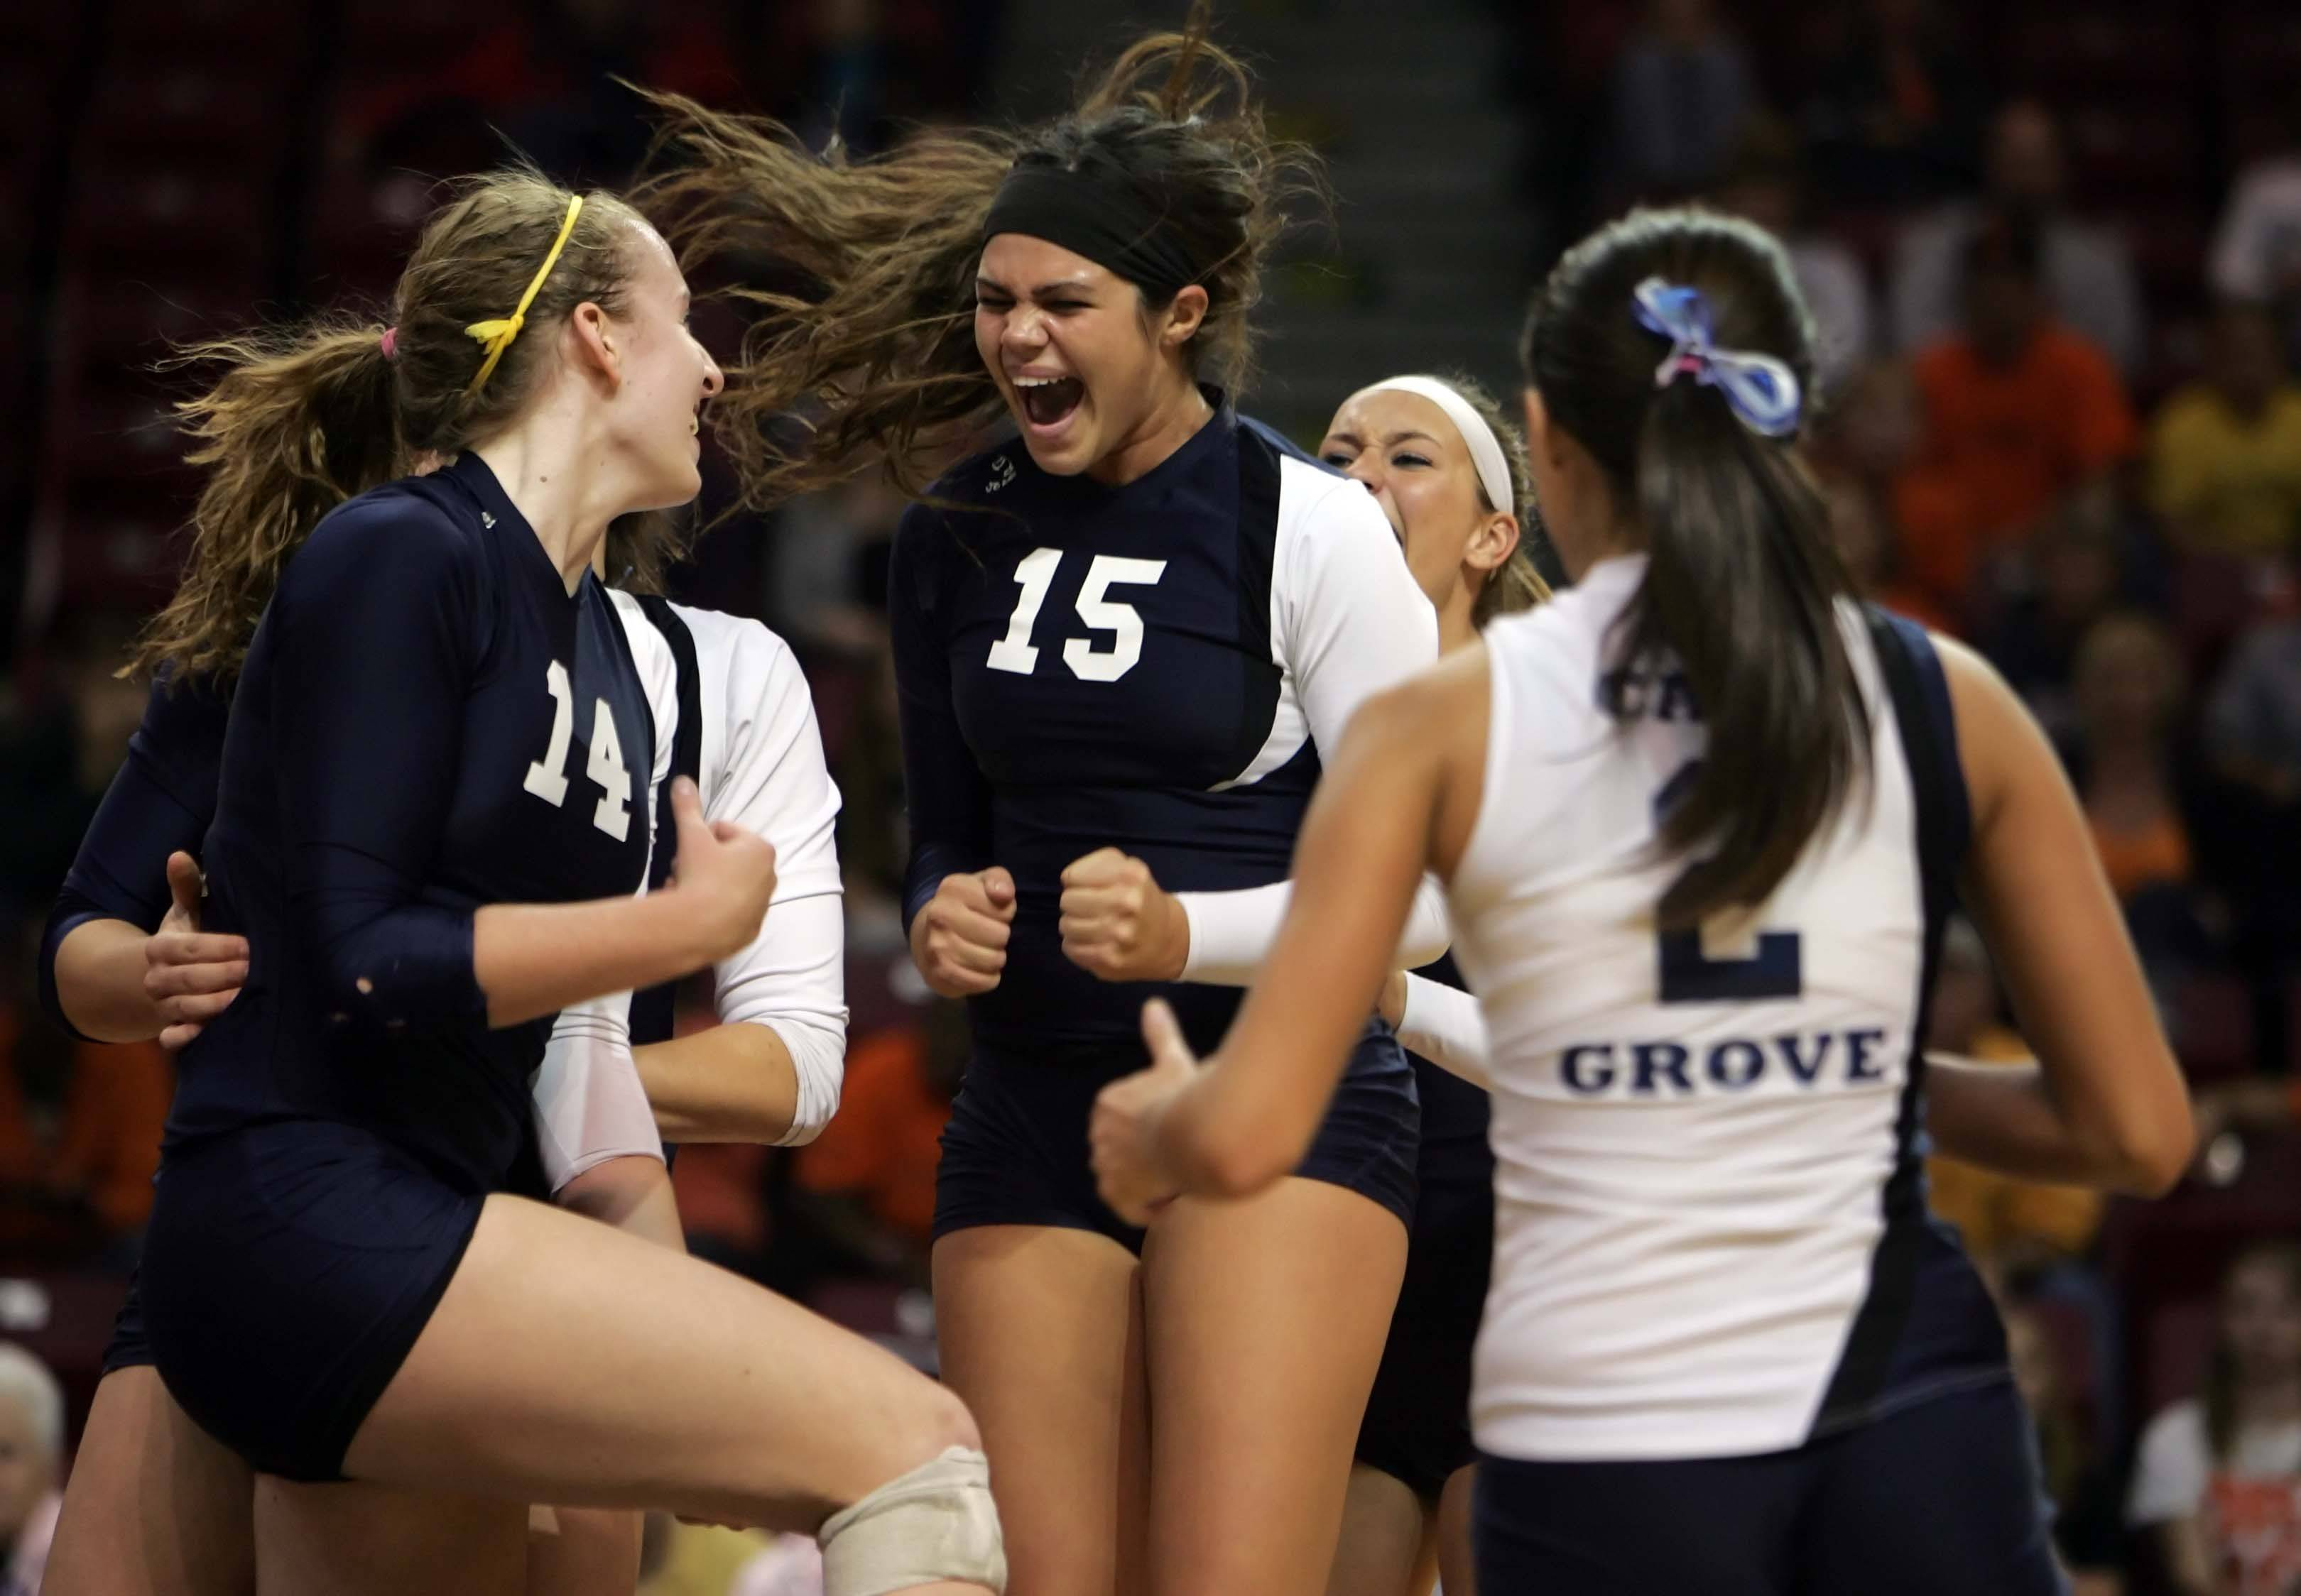 Cary-Grove setter Colleen Smith, 15, celebrates the Trojans win with her teammates after the Cary-Grove vs Edwardsville in the IHSA Class 4A State semi-final match Friday, November 12, 2010 at Redbird Arena in Normal.